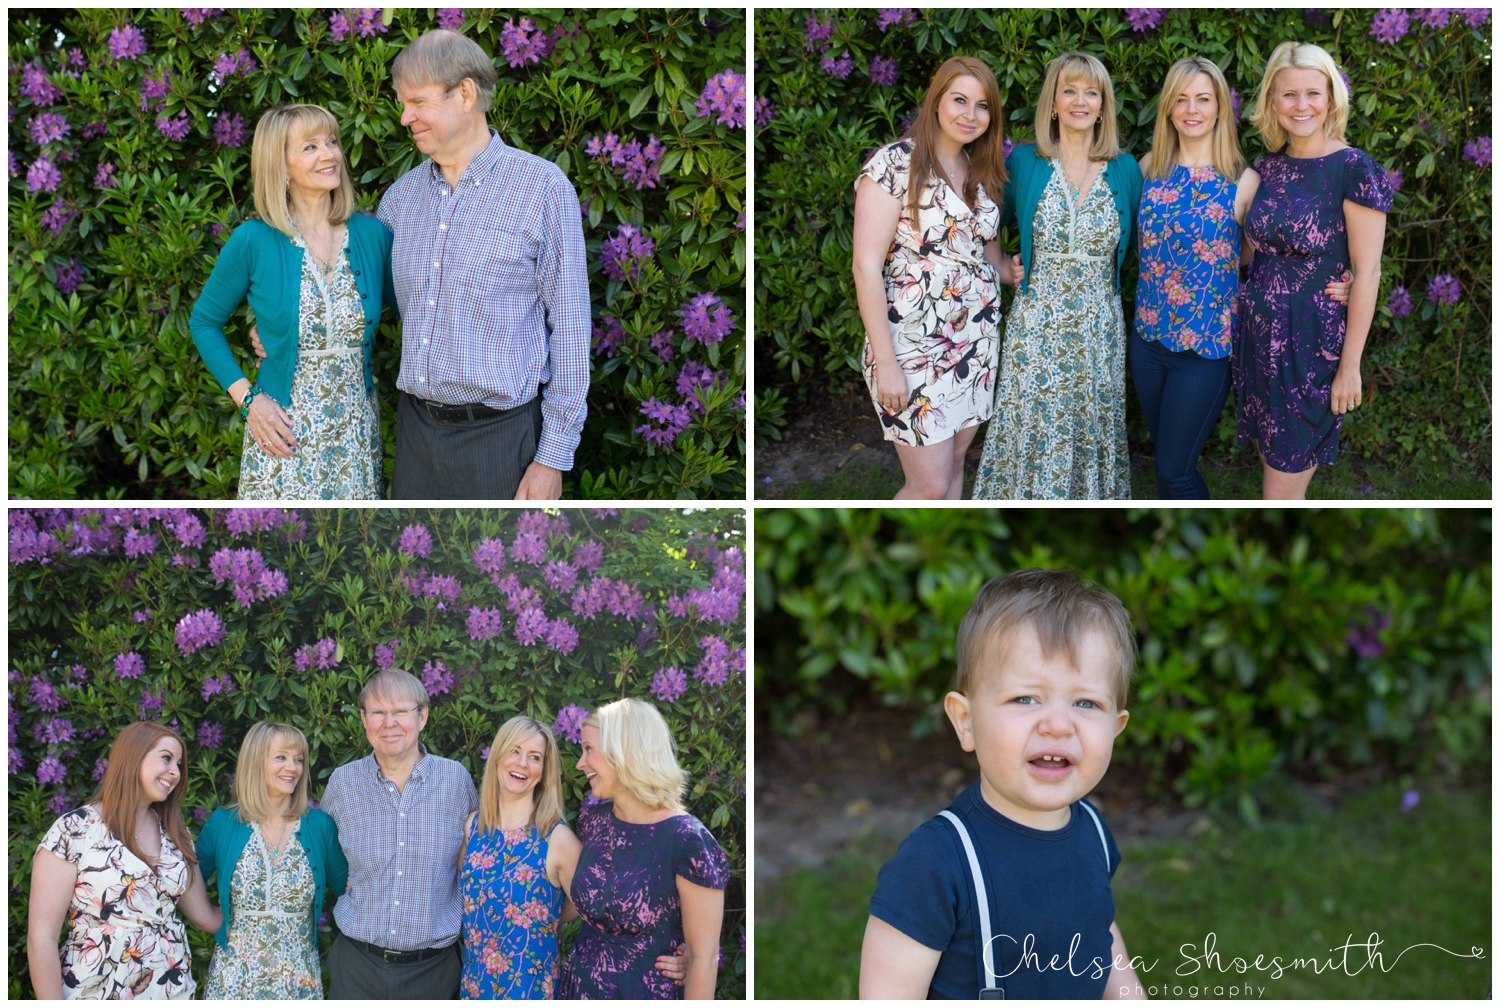 (32 of 125) Louise Roberts Family Portrait Wilmslow Chelsea Shoesmith Photography_